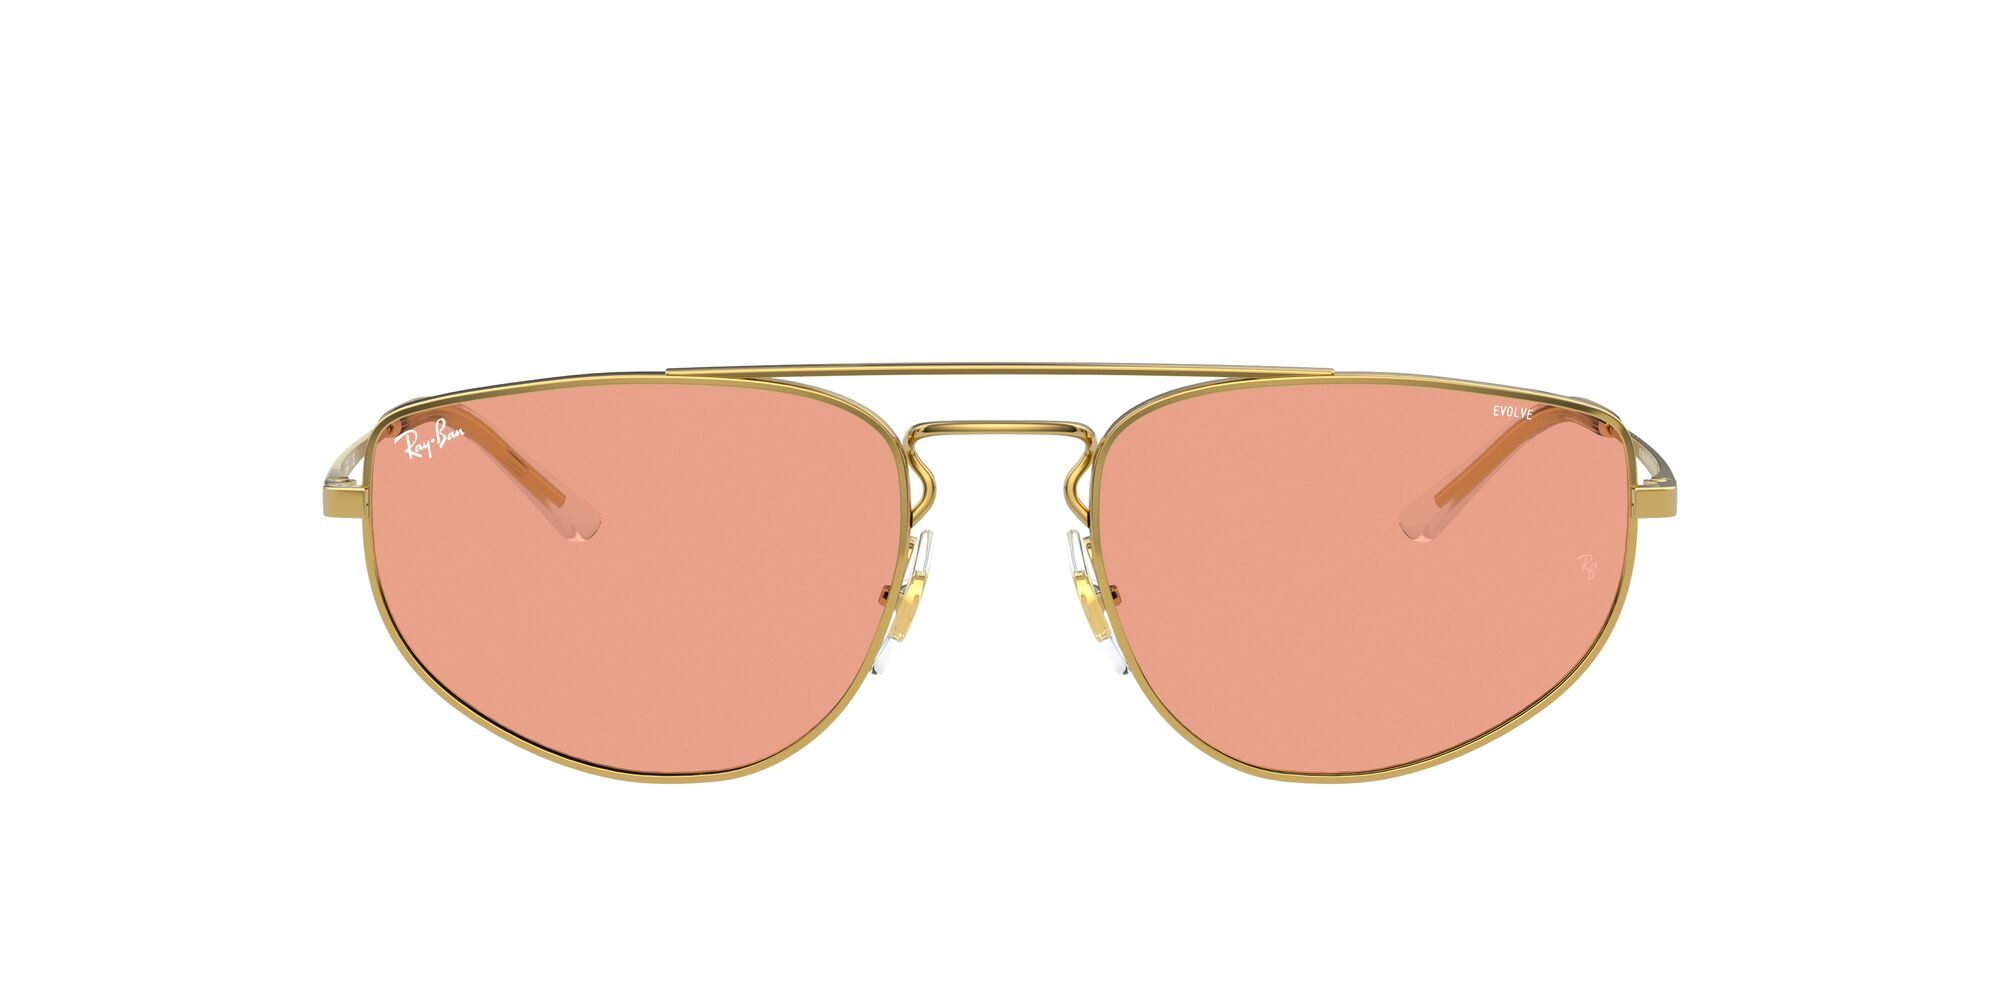 Front Ray-Ban Ray-Ban 0RB3668 001/Q6 55/19 Goud/Rood